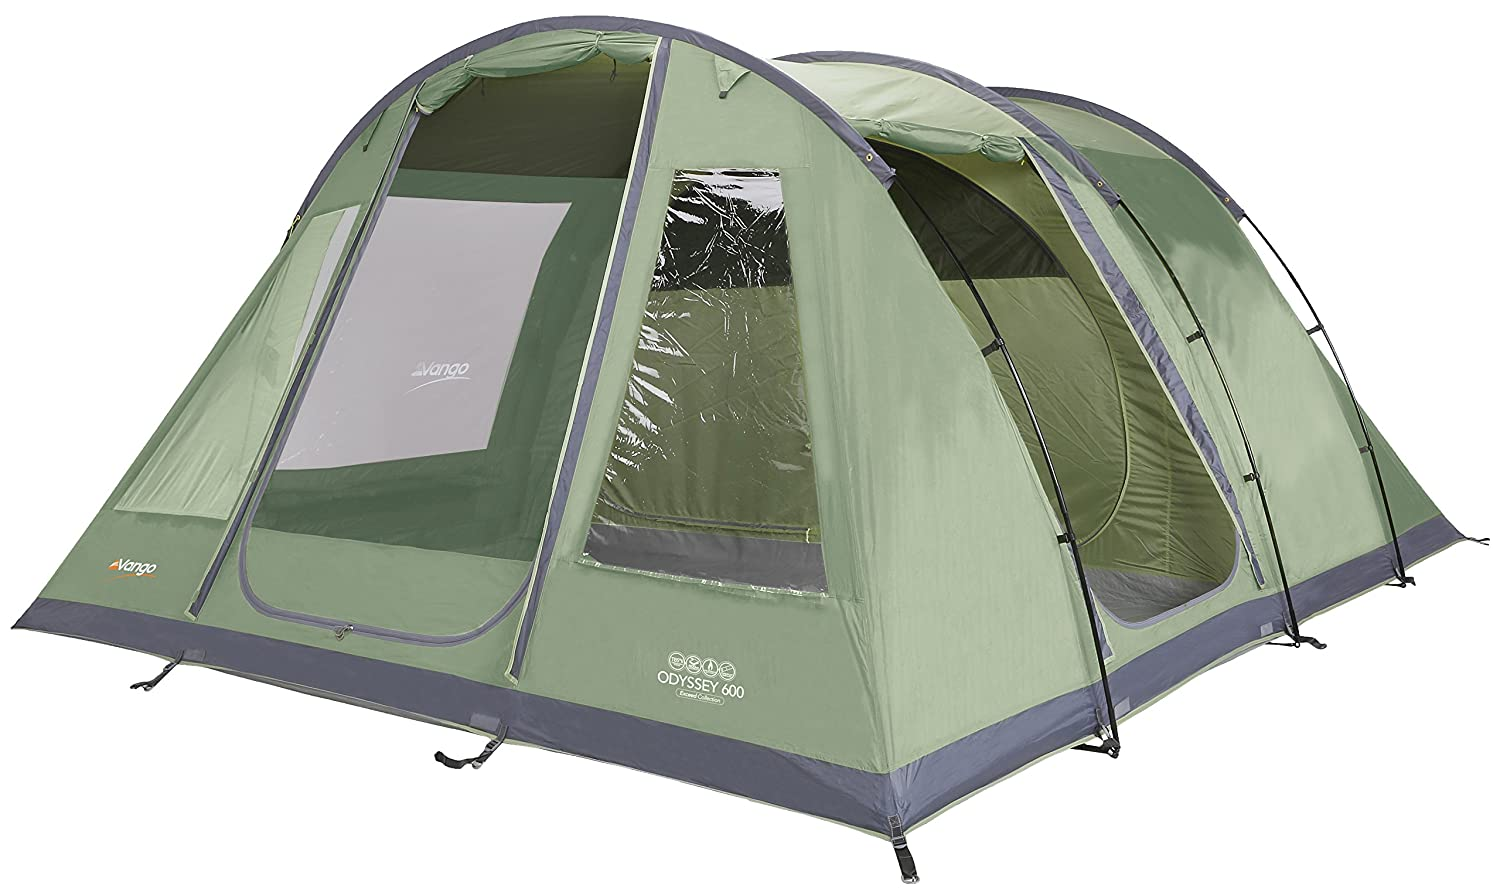 Vango Odyssey Family Tunnel Tent Epsom Green 600 Amazon.co.uk Sports u0026 Outdoors  sc 1 st  Amazon UK & Vango Odyssey Family Tunnel Tent Epsom Green 600: Amazon.co.uk ...